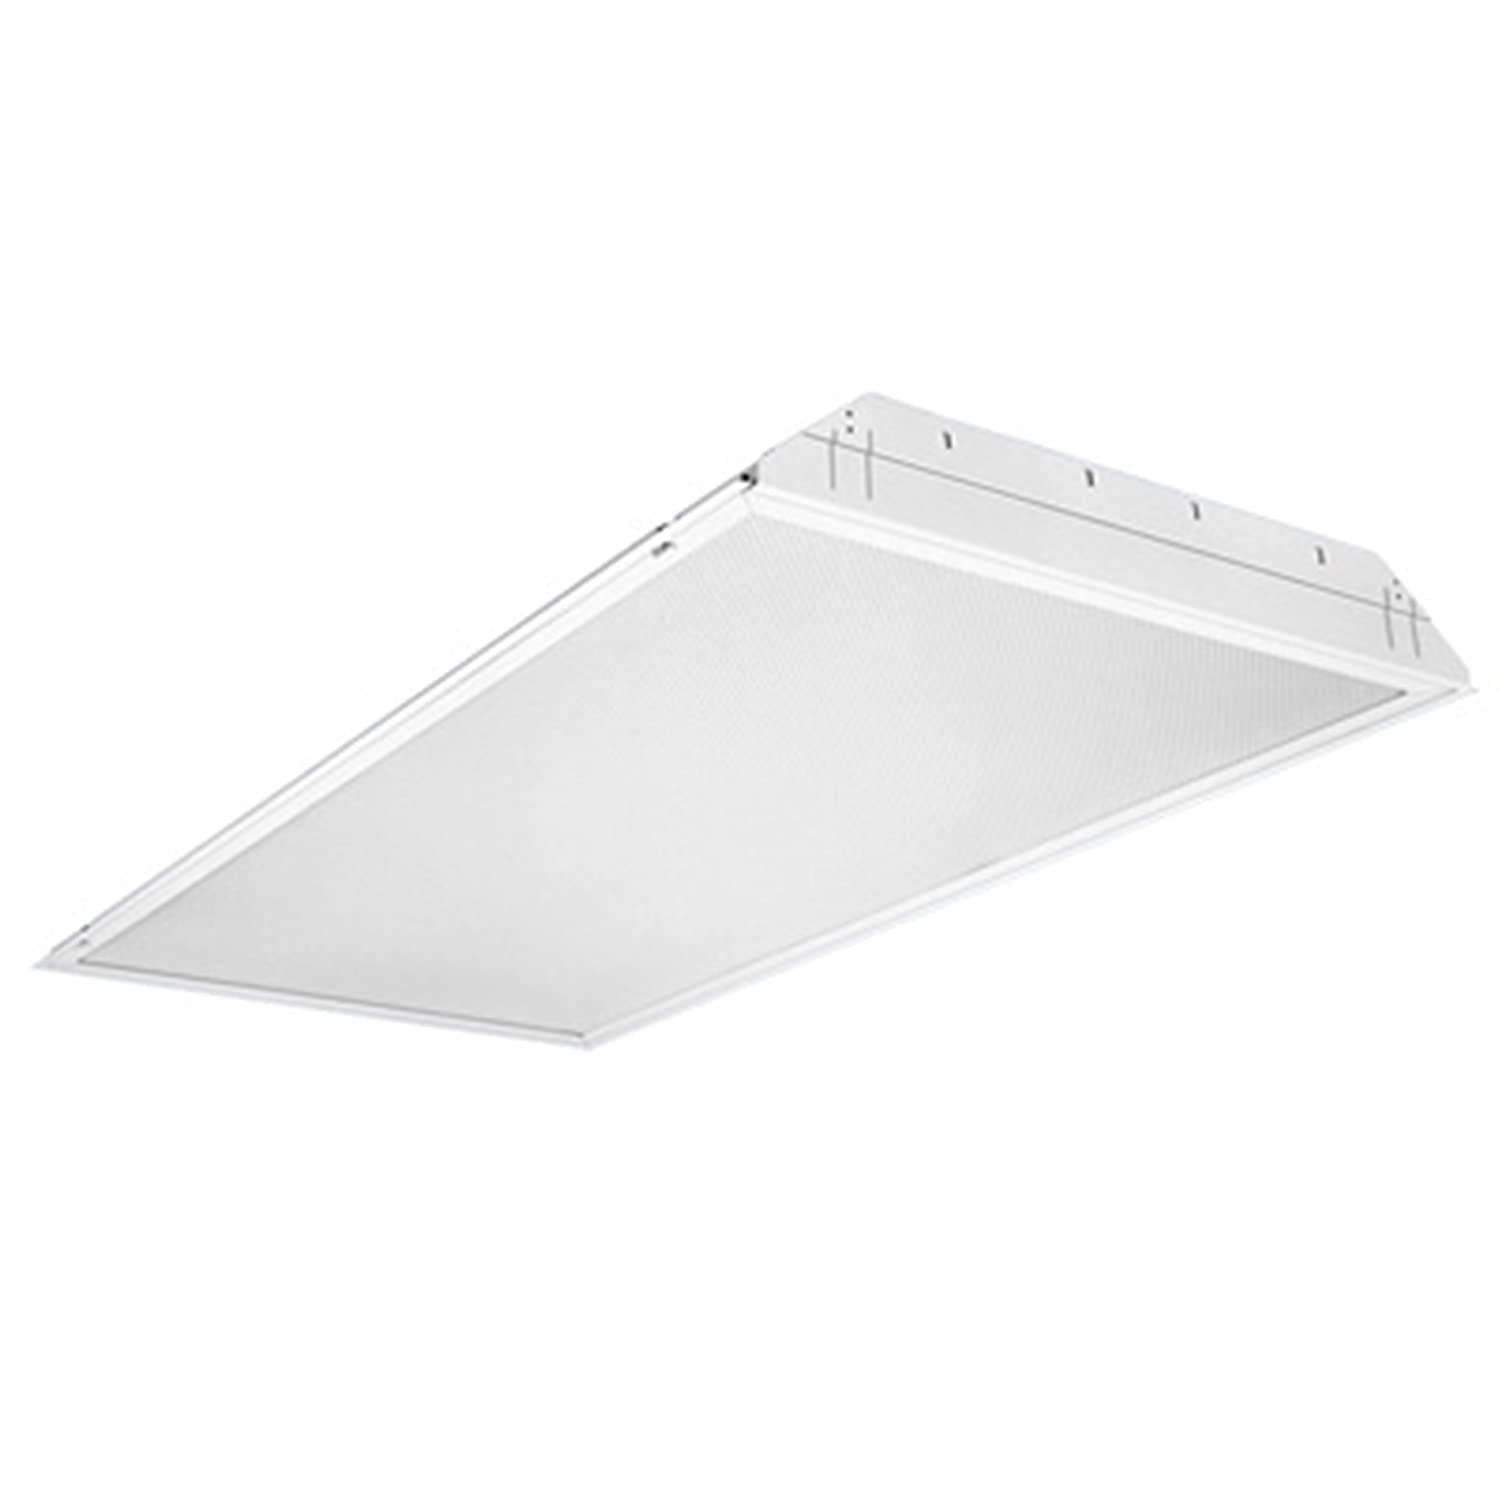 Lithonia Lighting GT4 MV 2 by 4 4-Light Recessed General Purpose ...